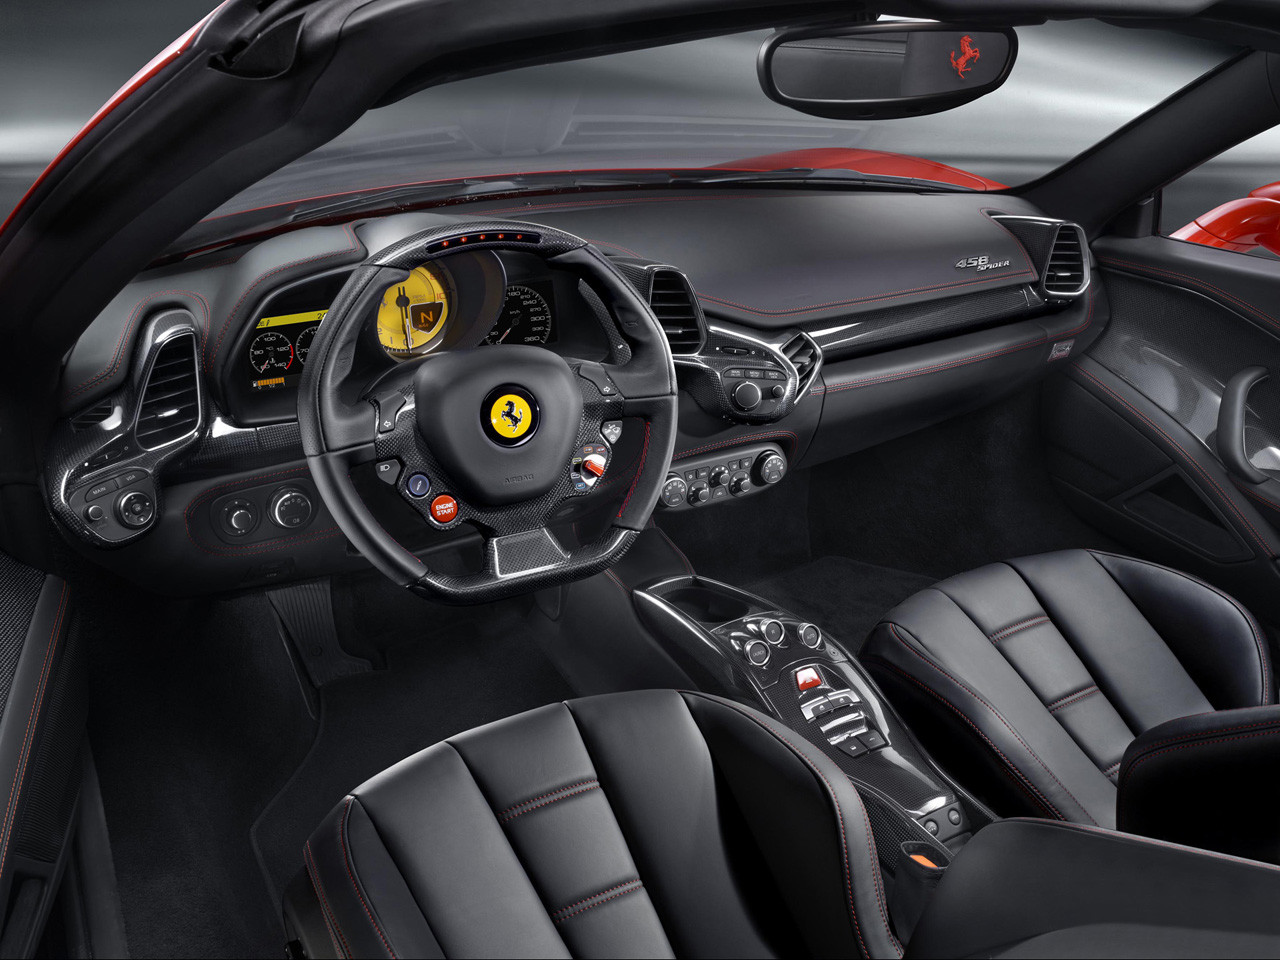 2012-Ferrari-458-Spider-Dashboard